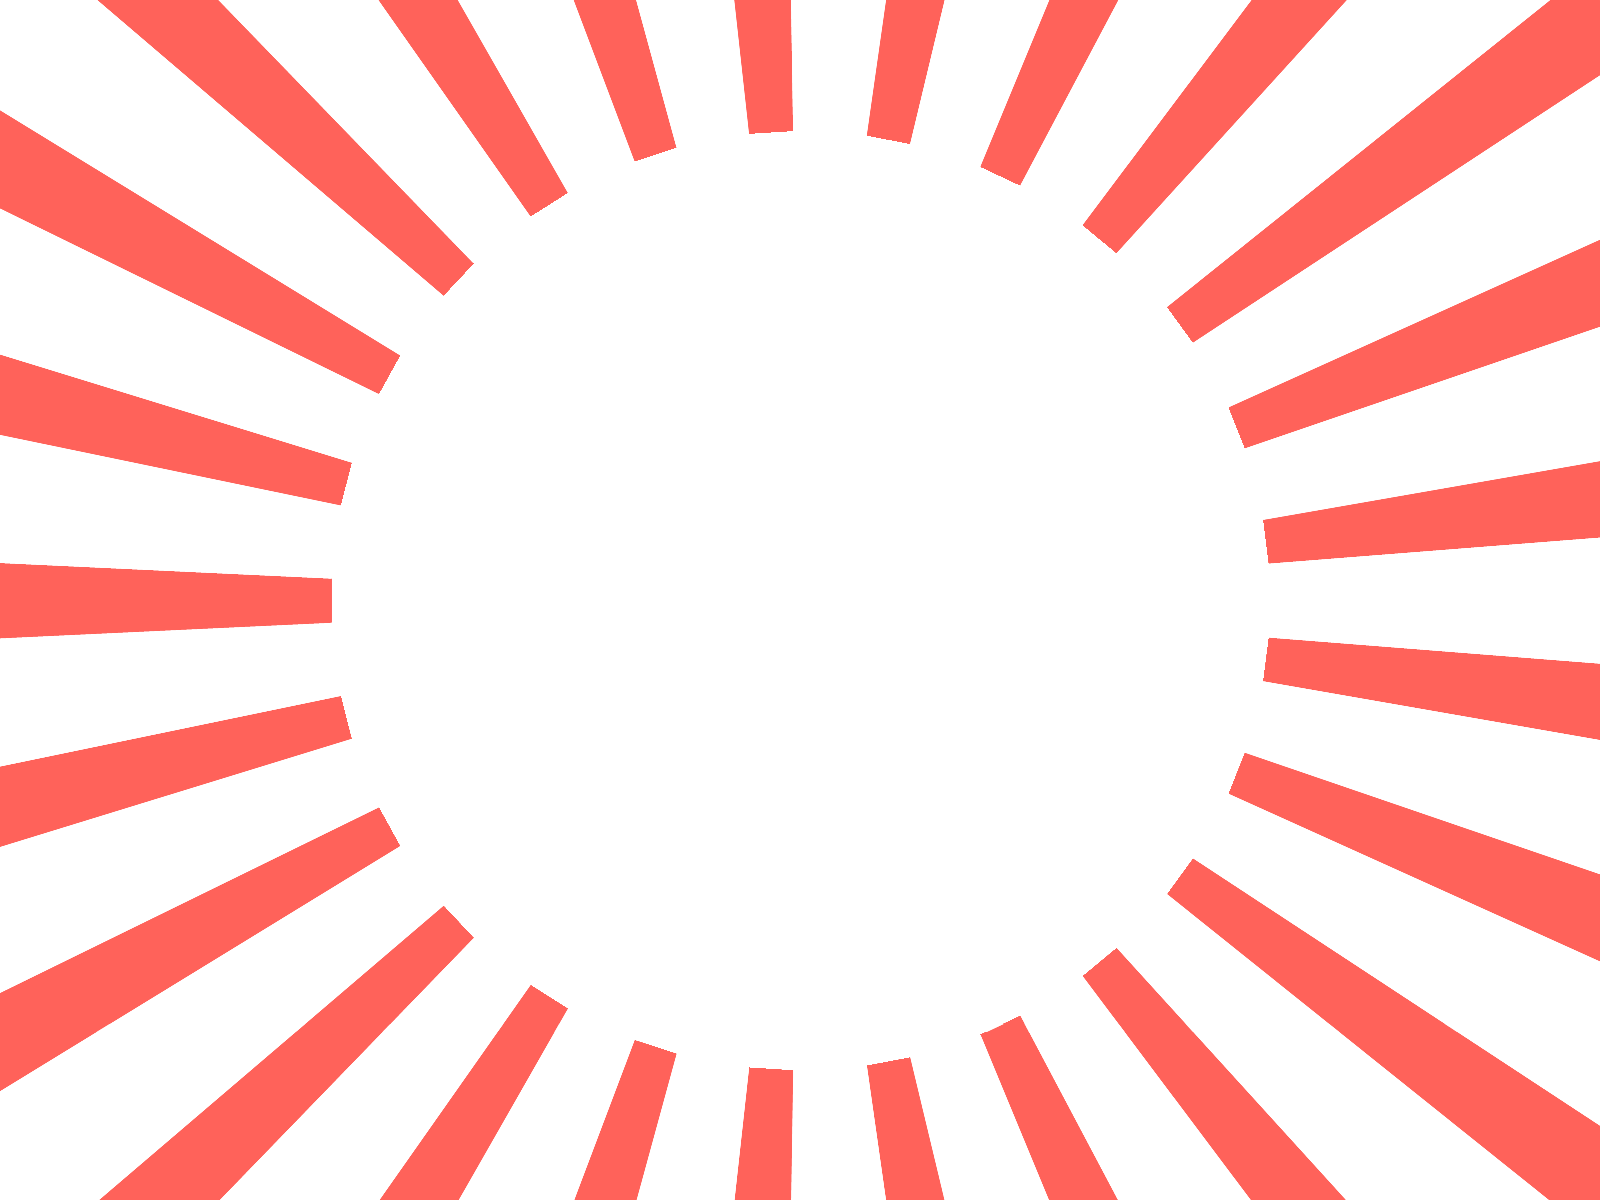 Sun rising clipart png svg black and white download red sunrise by spooky-dream on DeviantArt svg black and white download